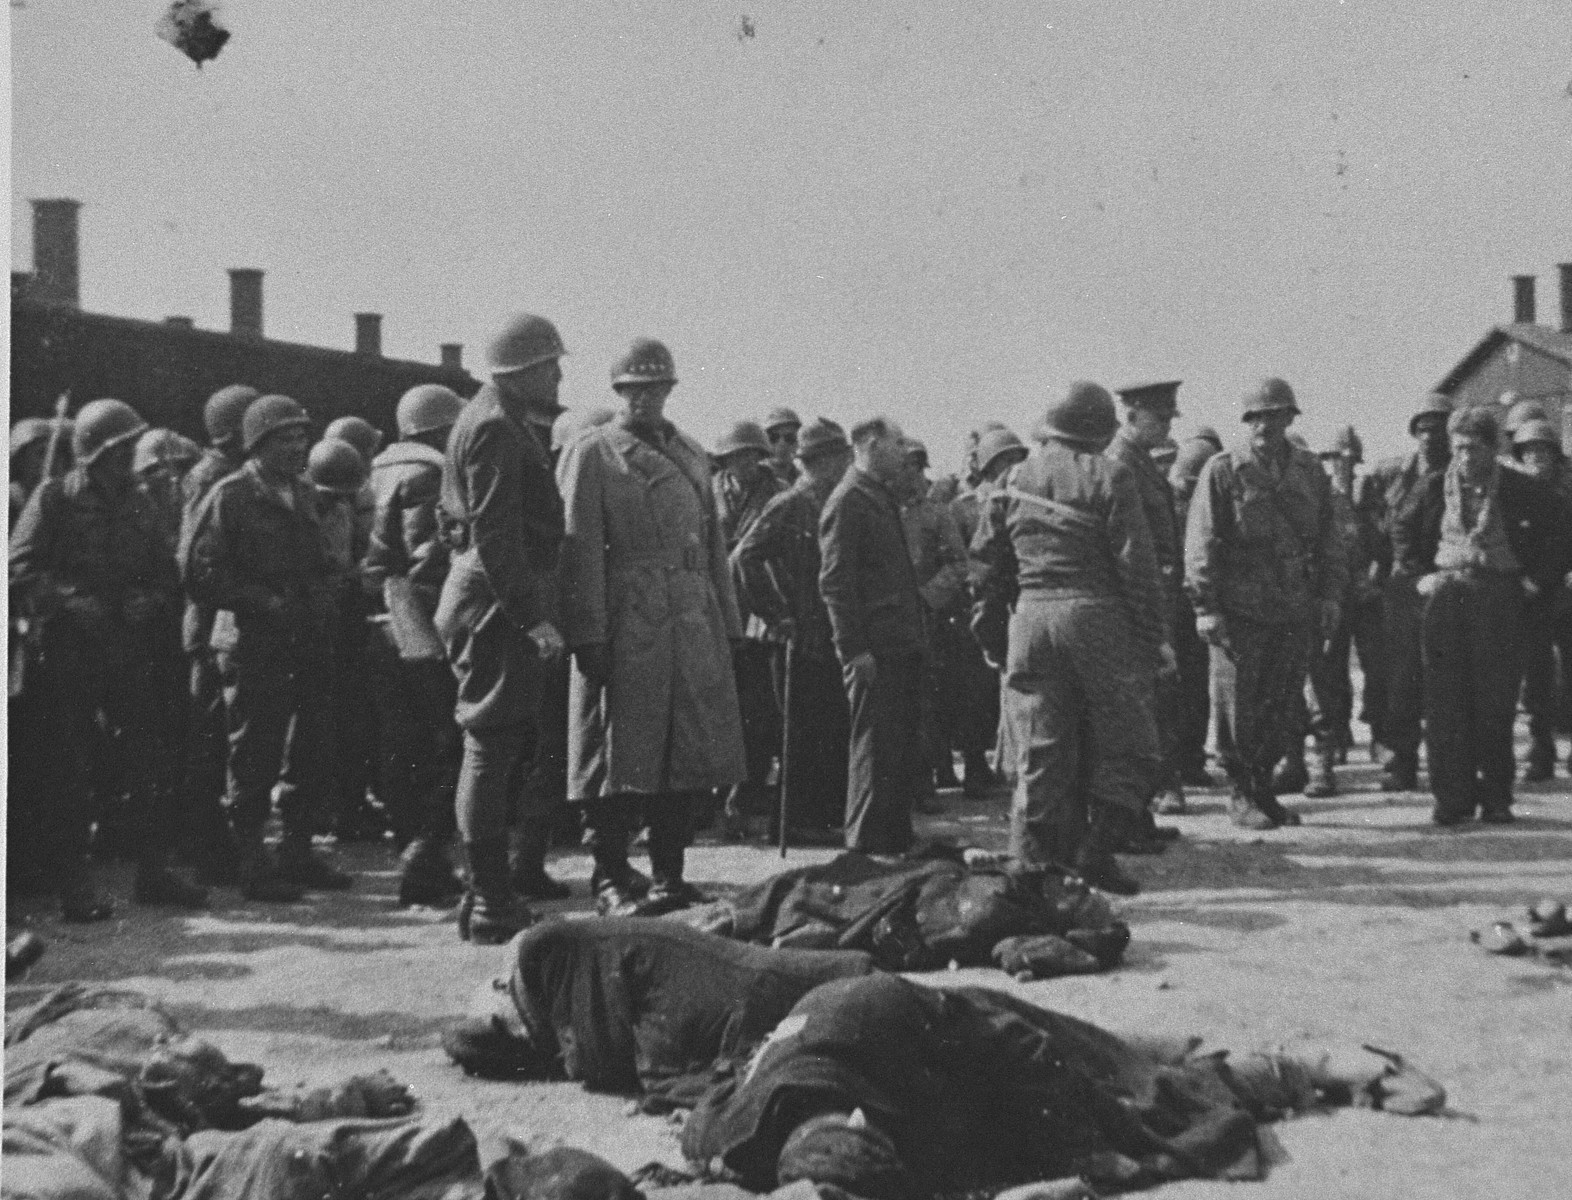 While on an inspection tour of the newly liberated Ohrdruf concentration camp, Generals Dwight Eisenhower, George Patton and Omar Bradley view the bodies of prisoners shot by SS during the evacuation of the camp.